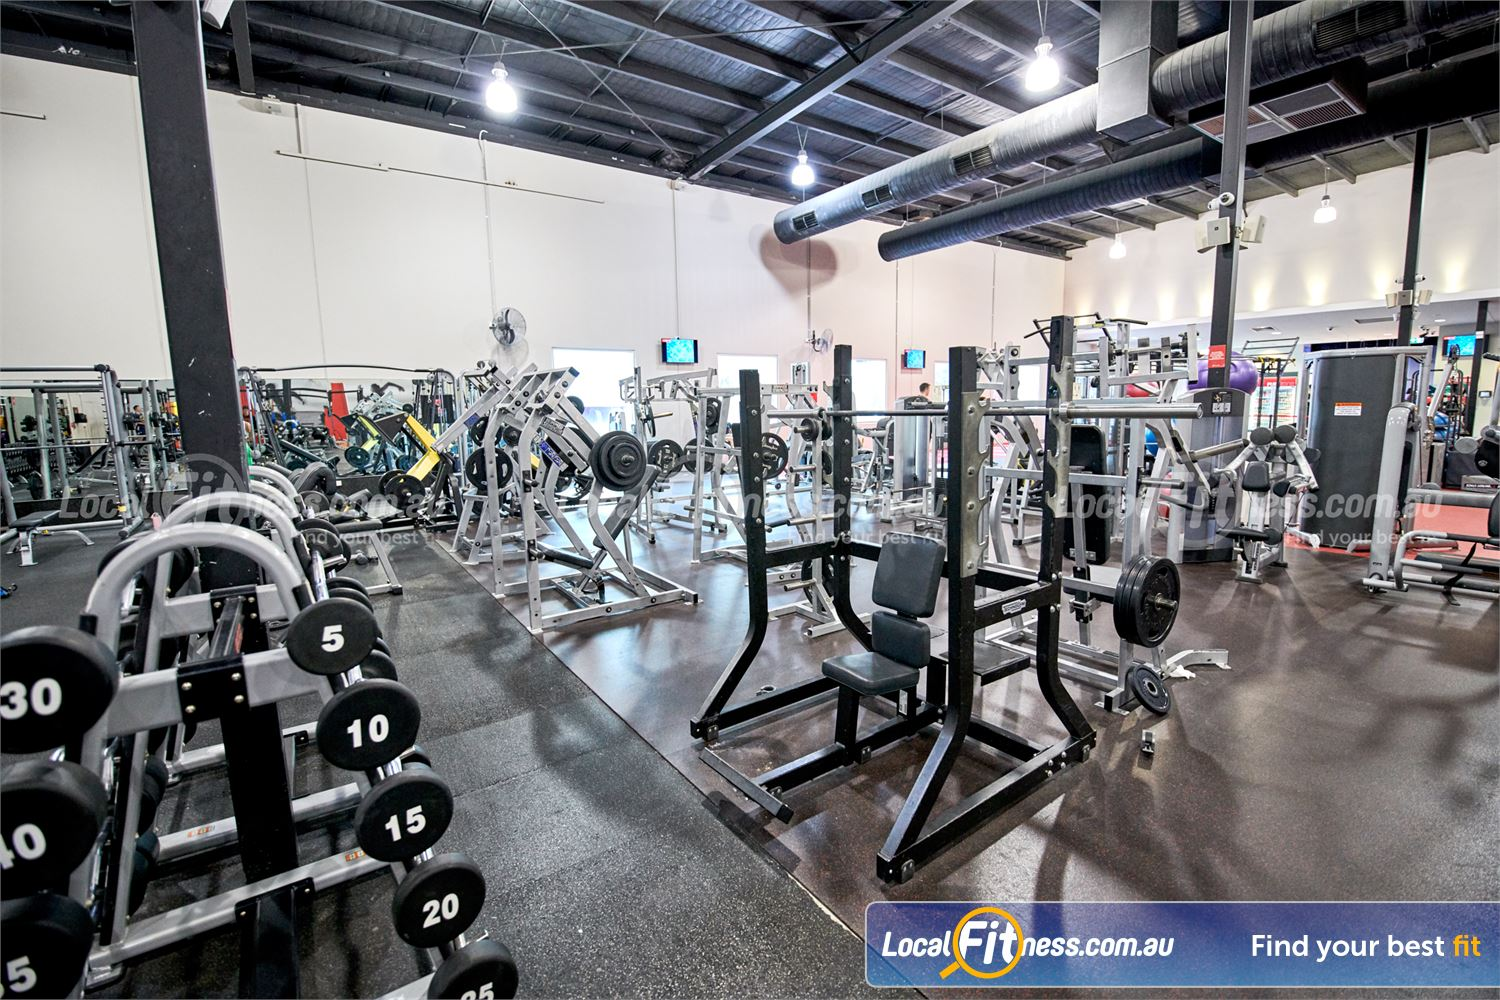 Fitness First Near Notting Hill Full range of plate-loading machines from Hammer Strength and Technogym.